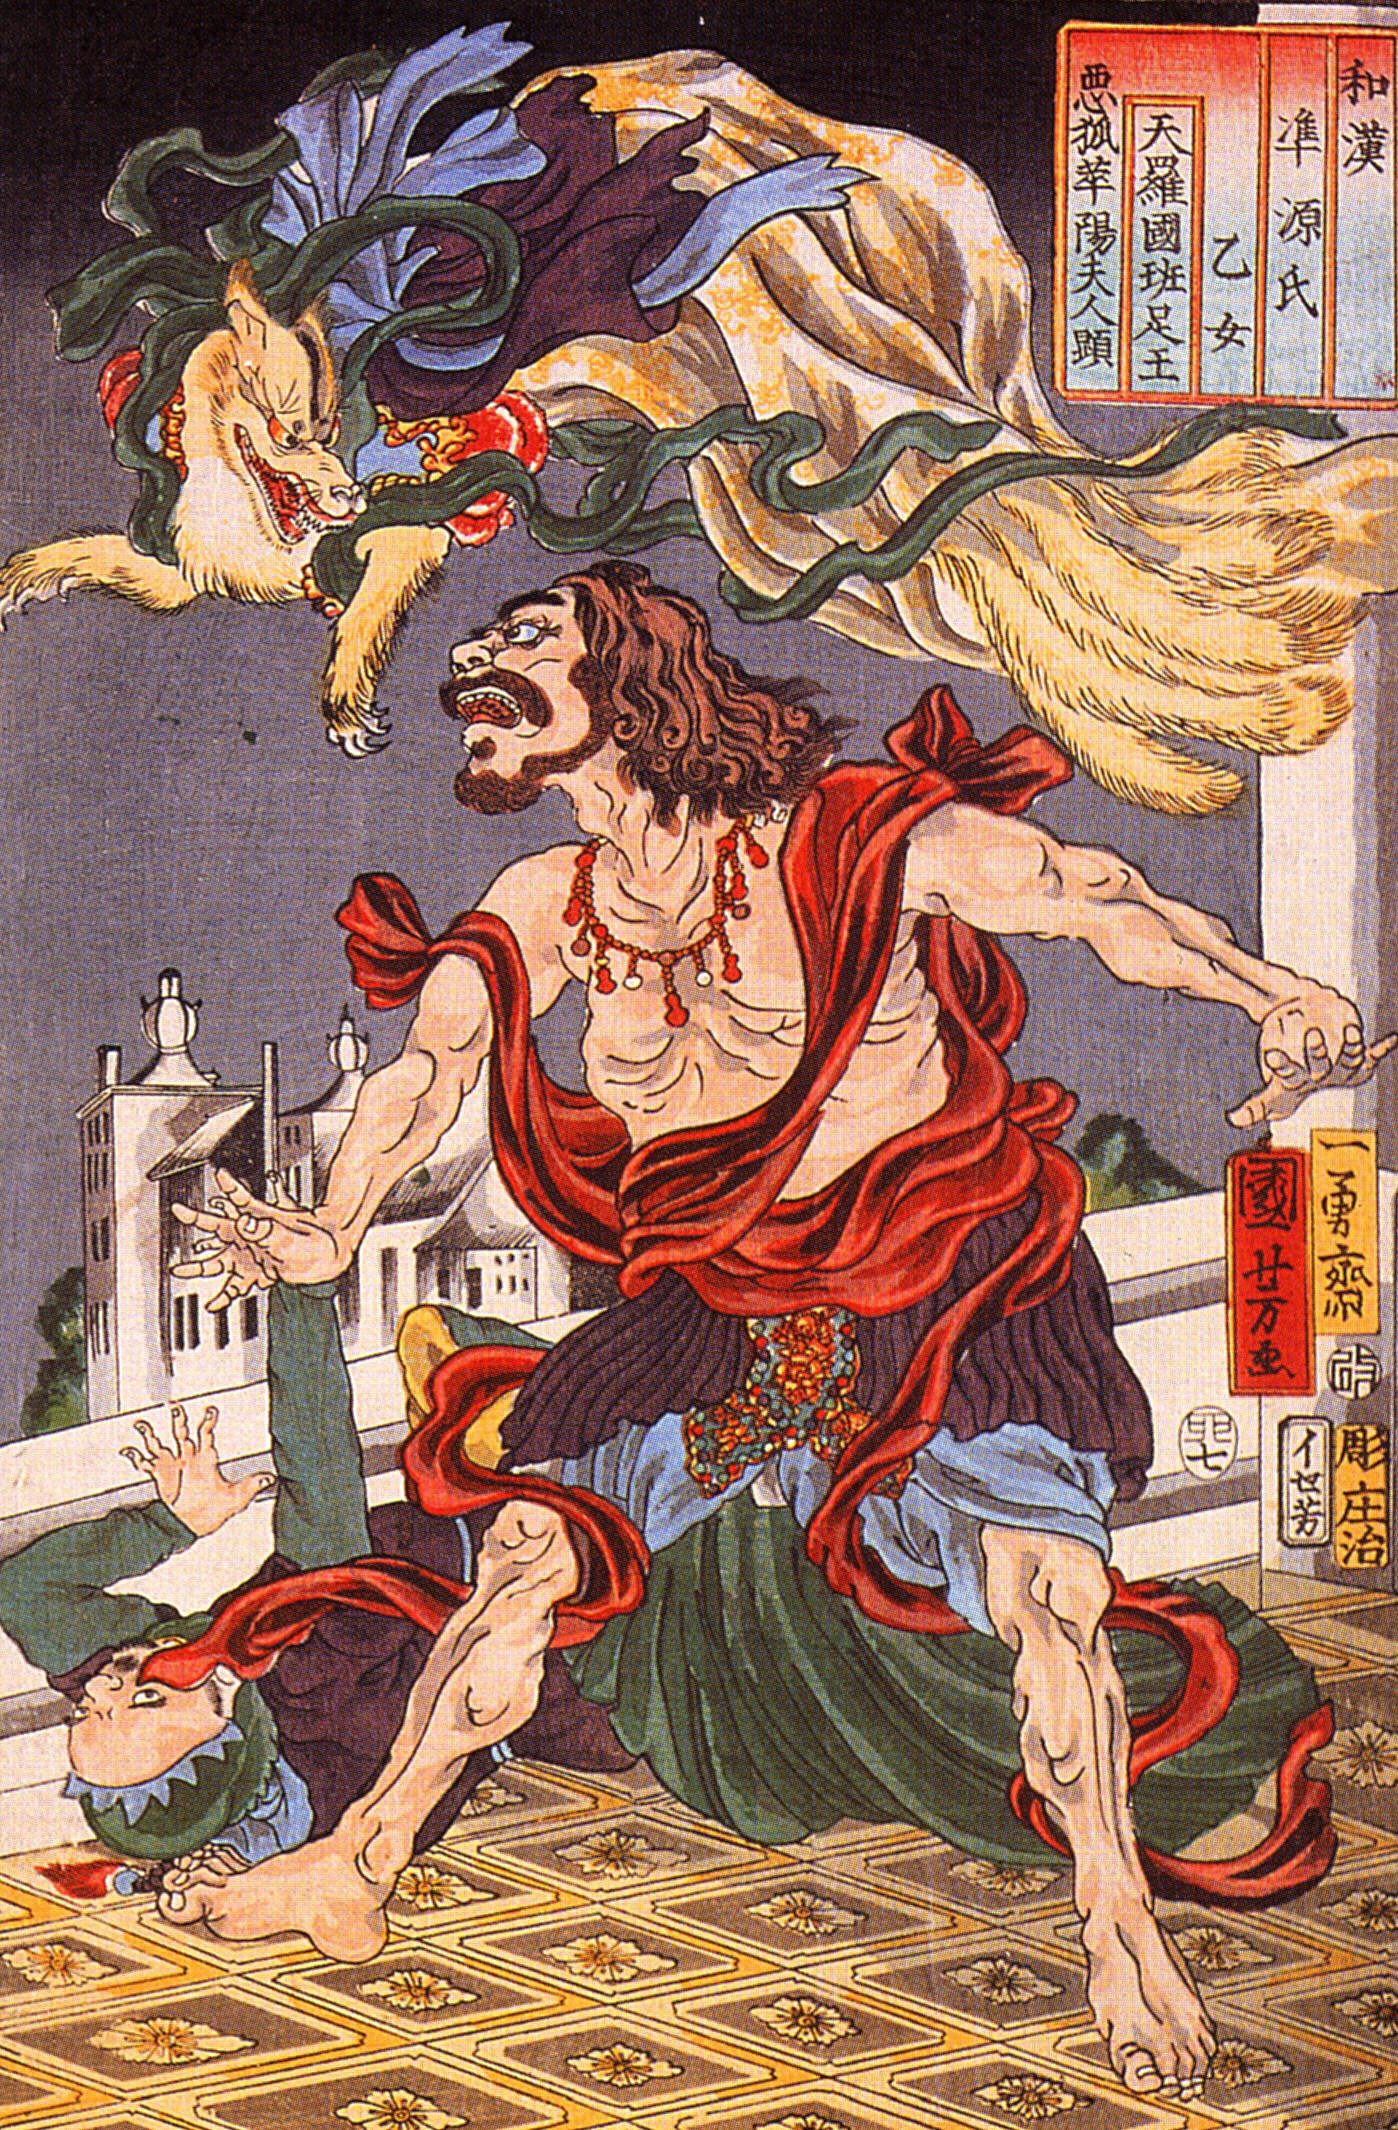 10 Bizarre Creatures from Japanese Folklore